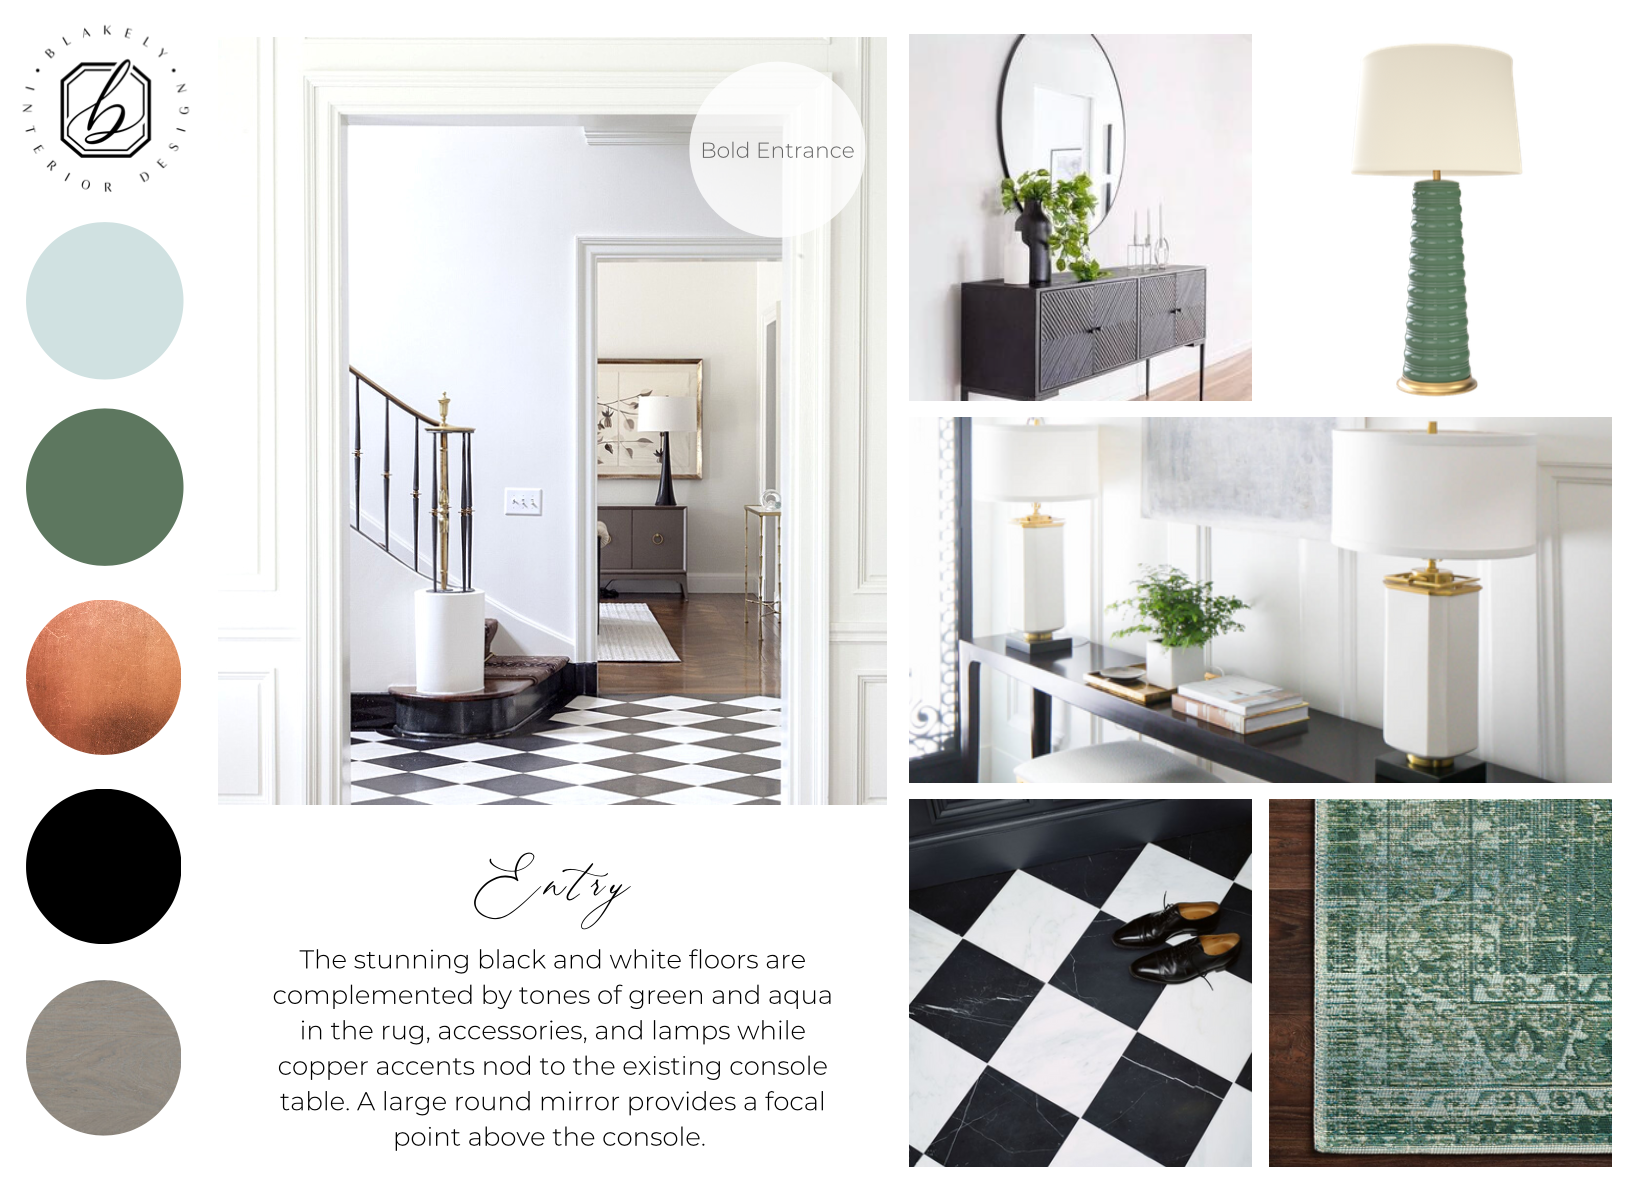 blakely interior design newport new england traditional design in east greenwich entry mood board plan